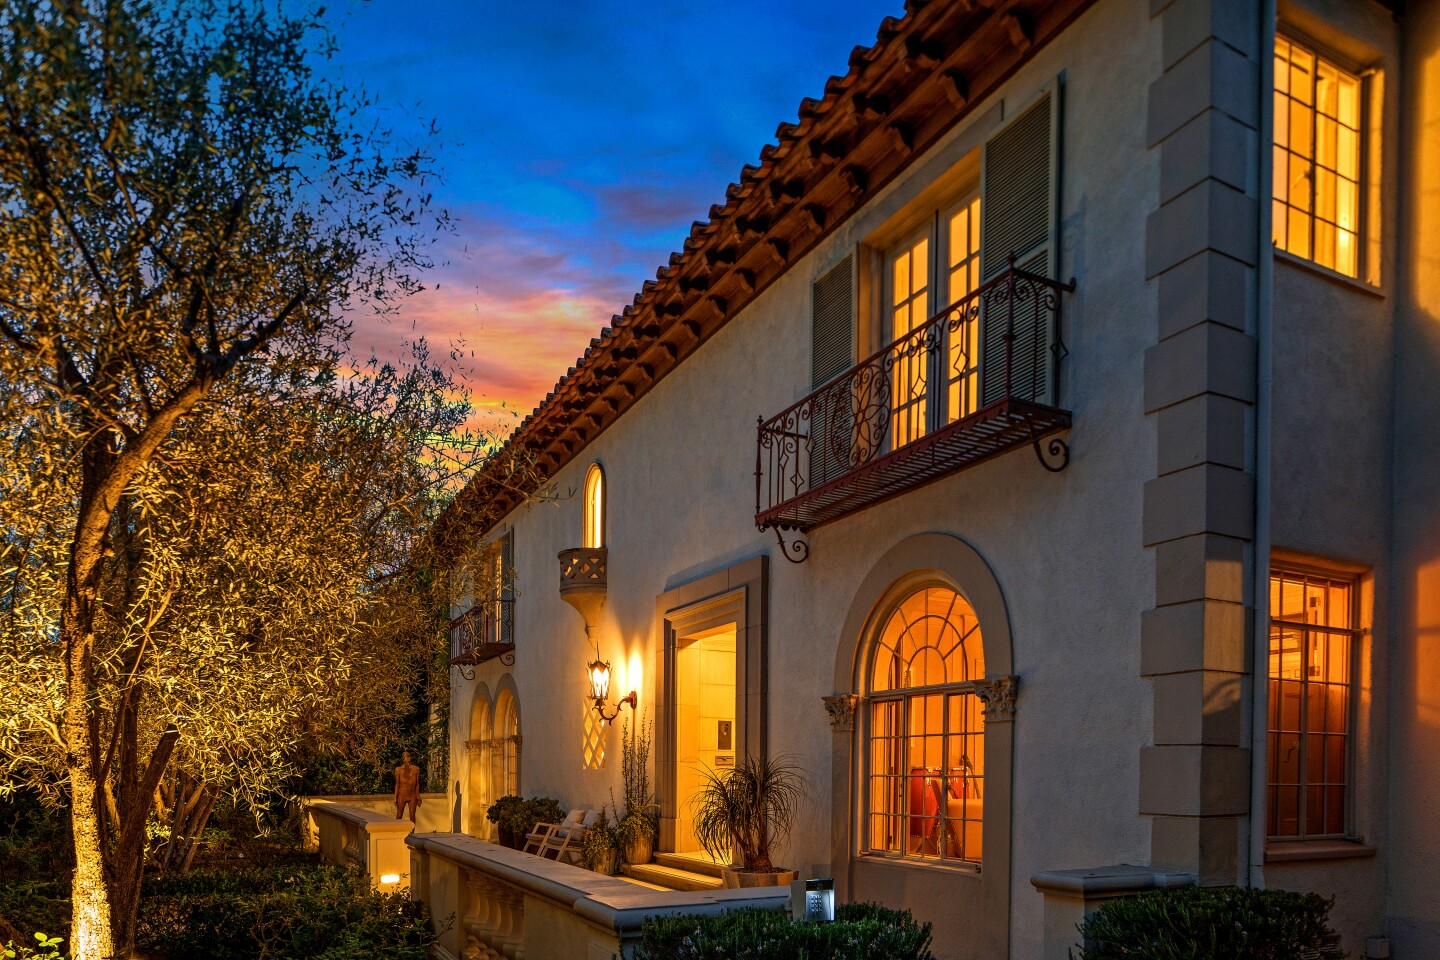 Built in the '20s but recently updated, the nearly 11,000-square-foot mansion in Beverly Hills Flats mixes period details with modern amenities. In the Beverly Hills Flats, a dramatic remodel gave this 1920s Mediterranean modern updates including a chef's kitchen and movie theater. Asking price: $25 million.